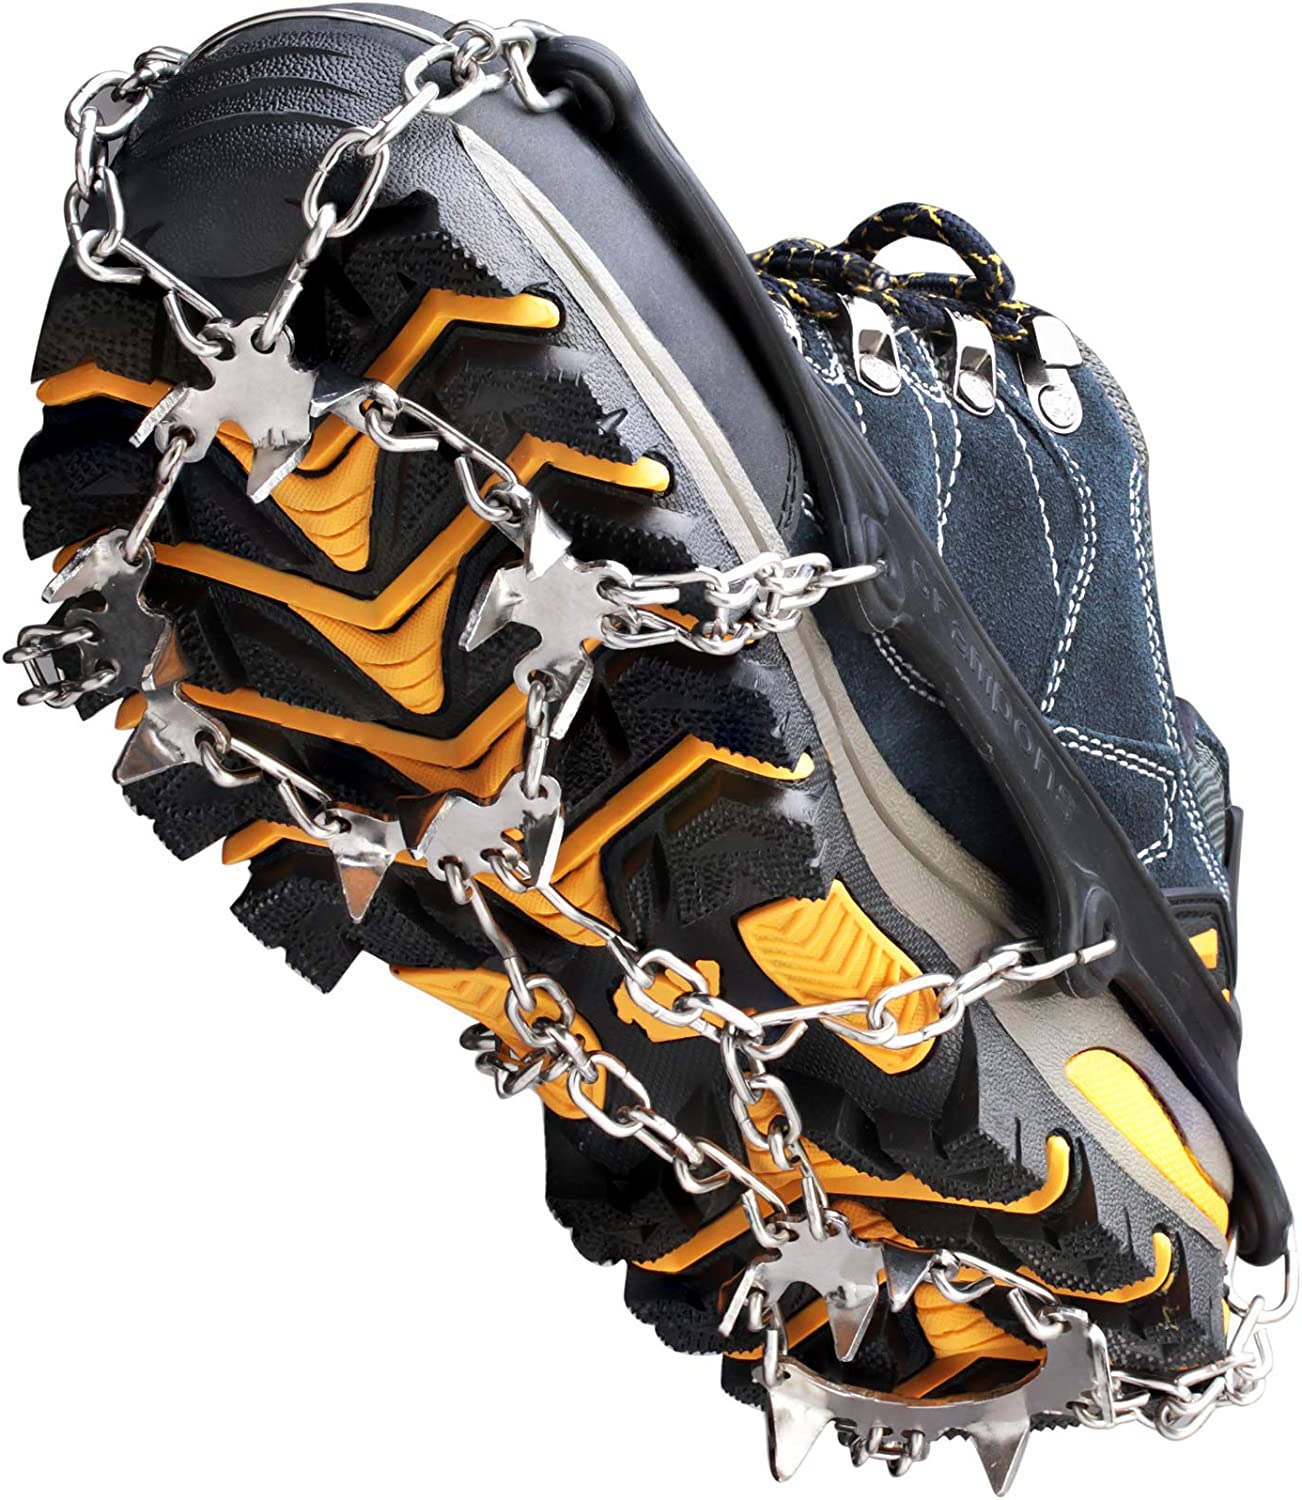 SALENEW very popular Crampons Ice Cleats Mesa Mall Traction Snow Grips for Boots Women Shoes Me